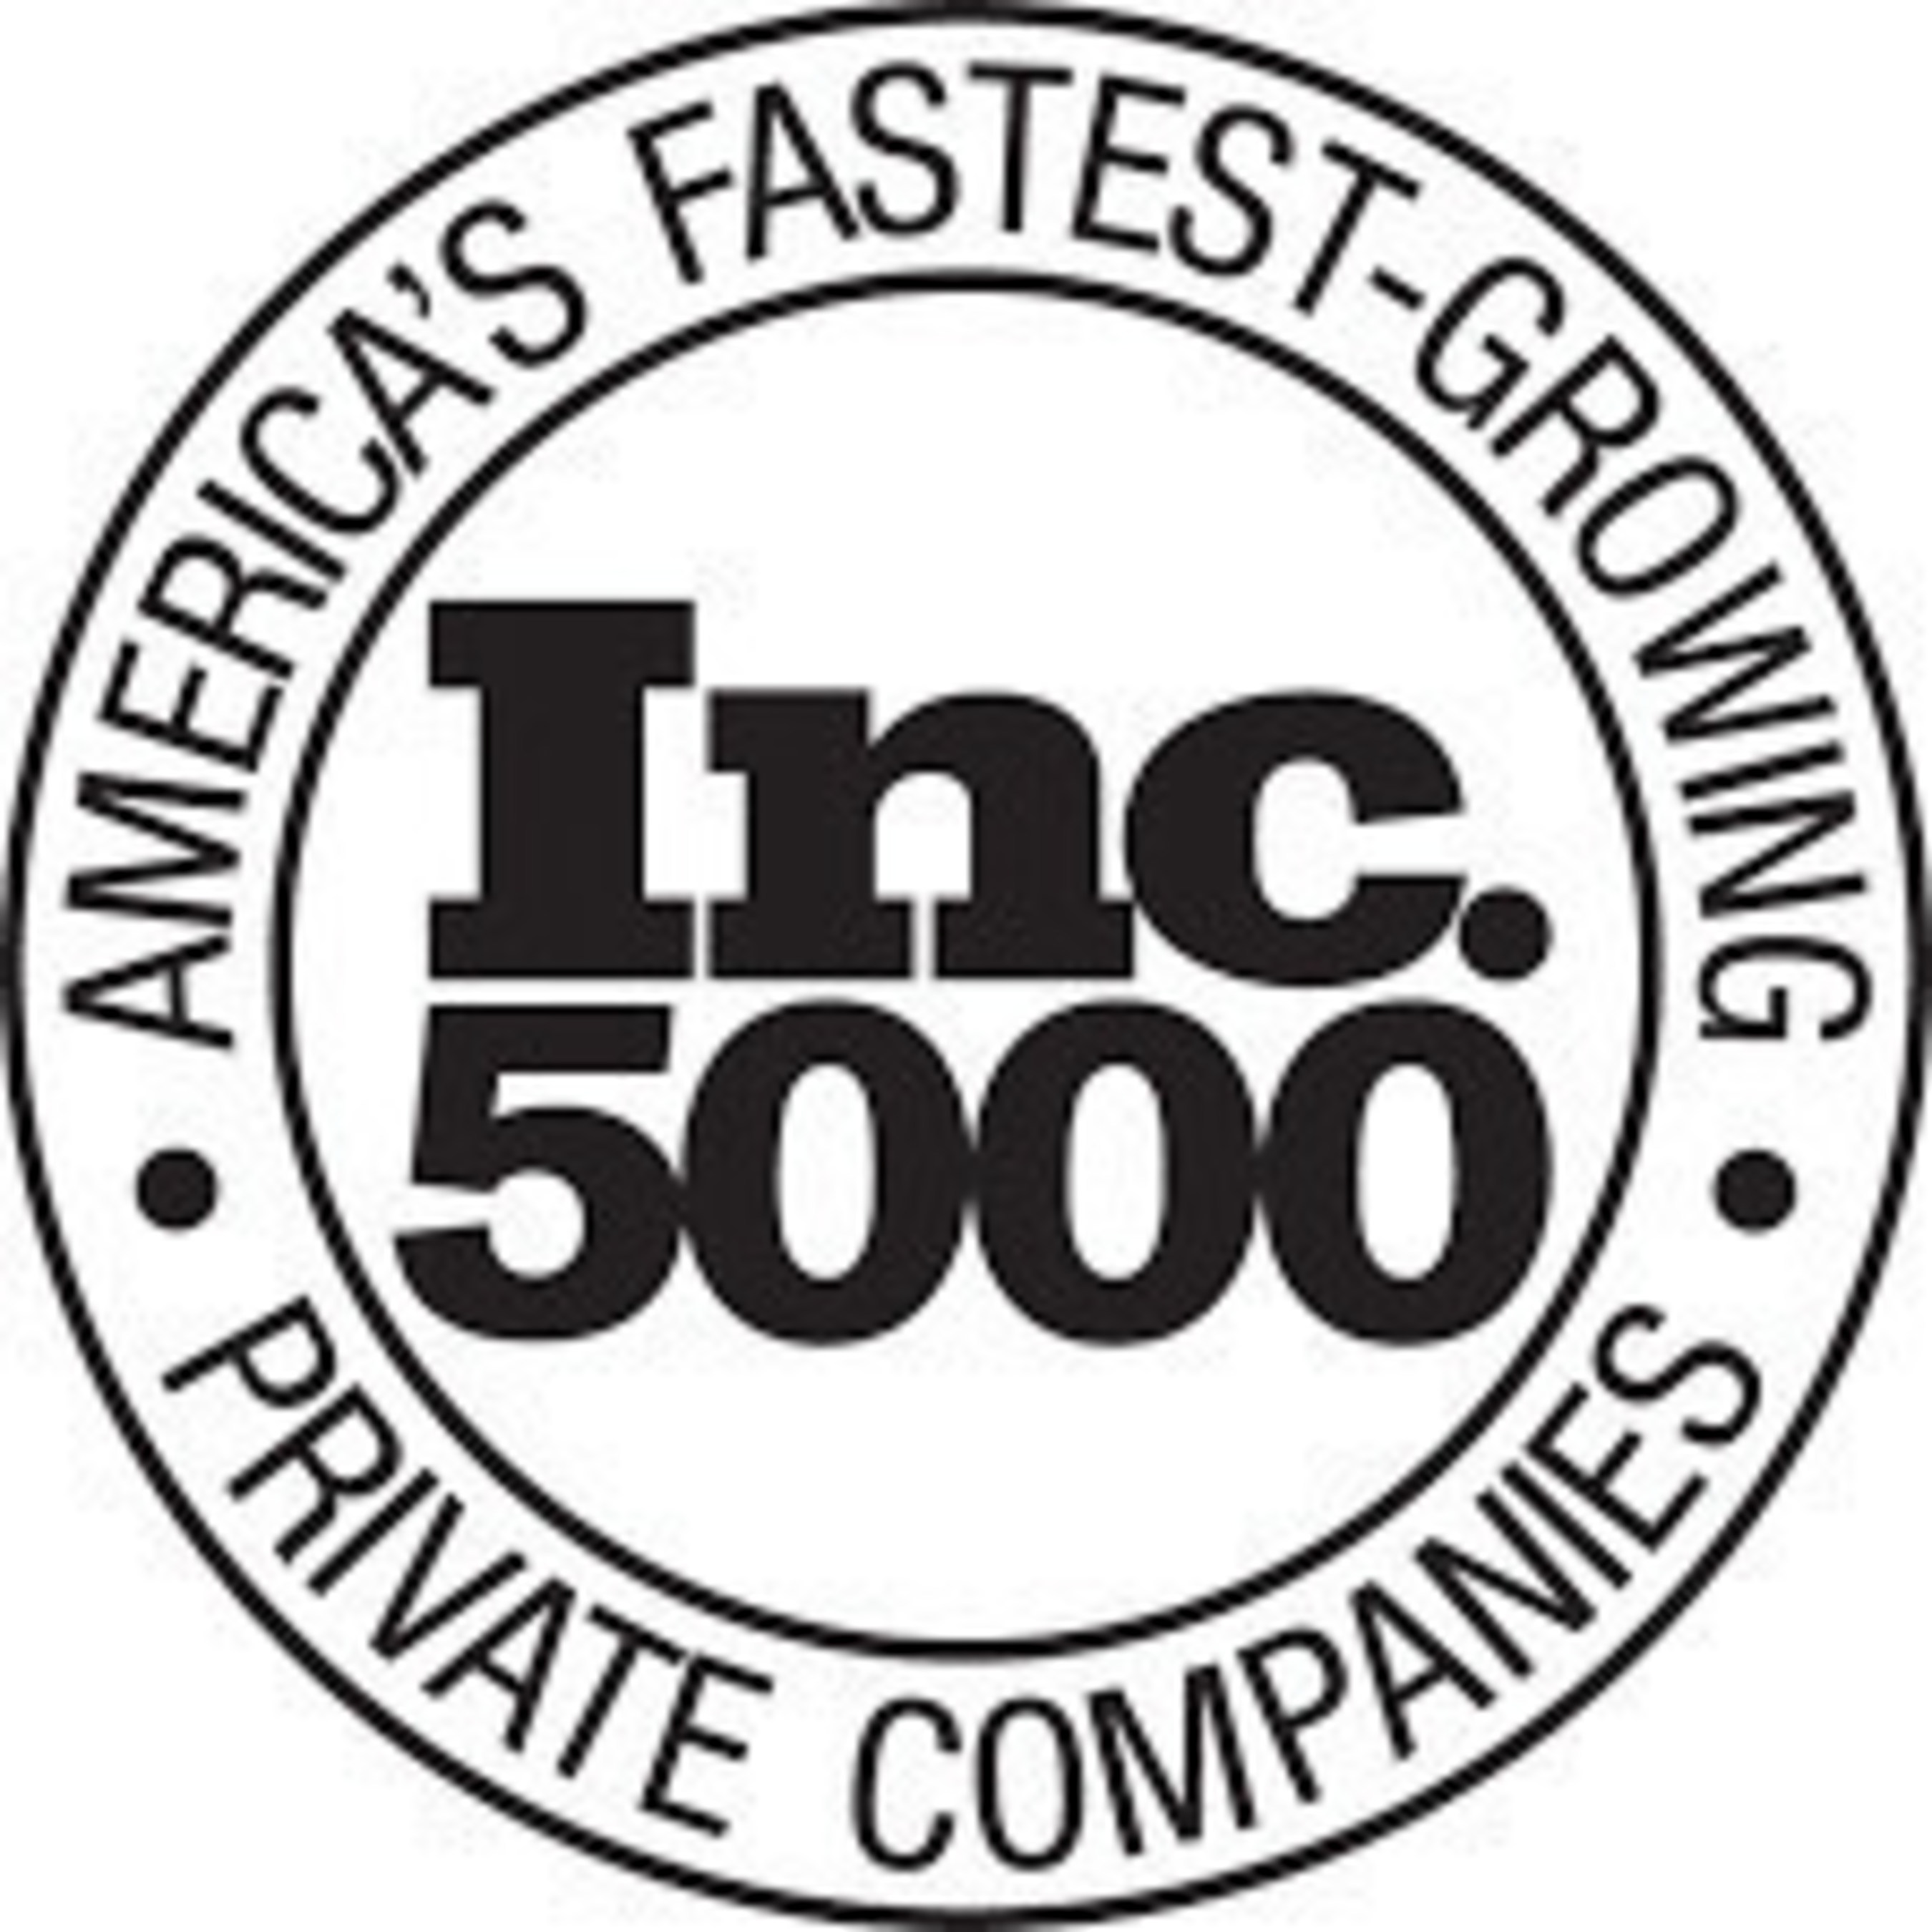 Audacious Inquiry Achieves 5th Consecutive Year on Inc. 5000 List of Fastest Growing U.S. Companies